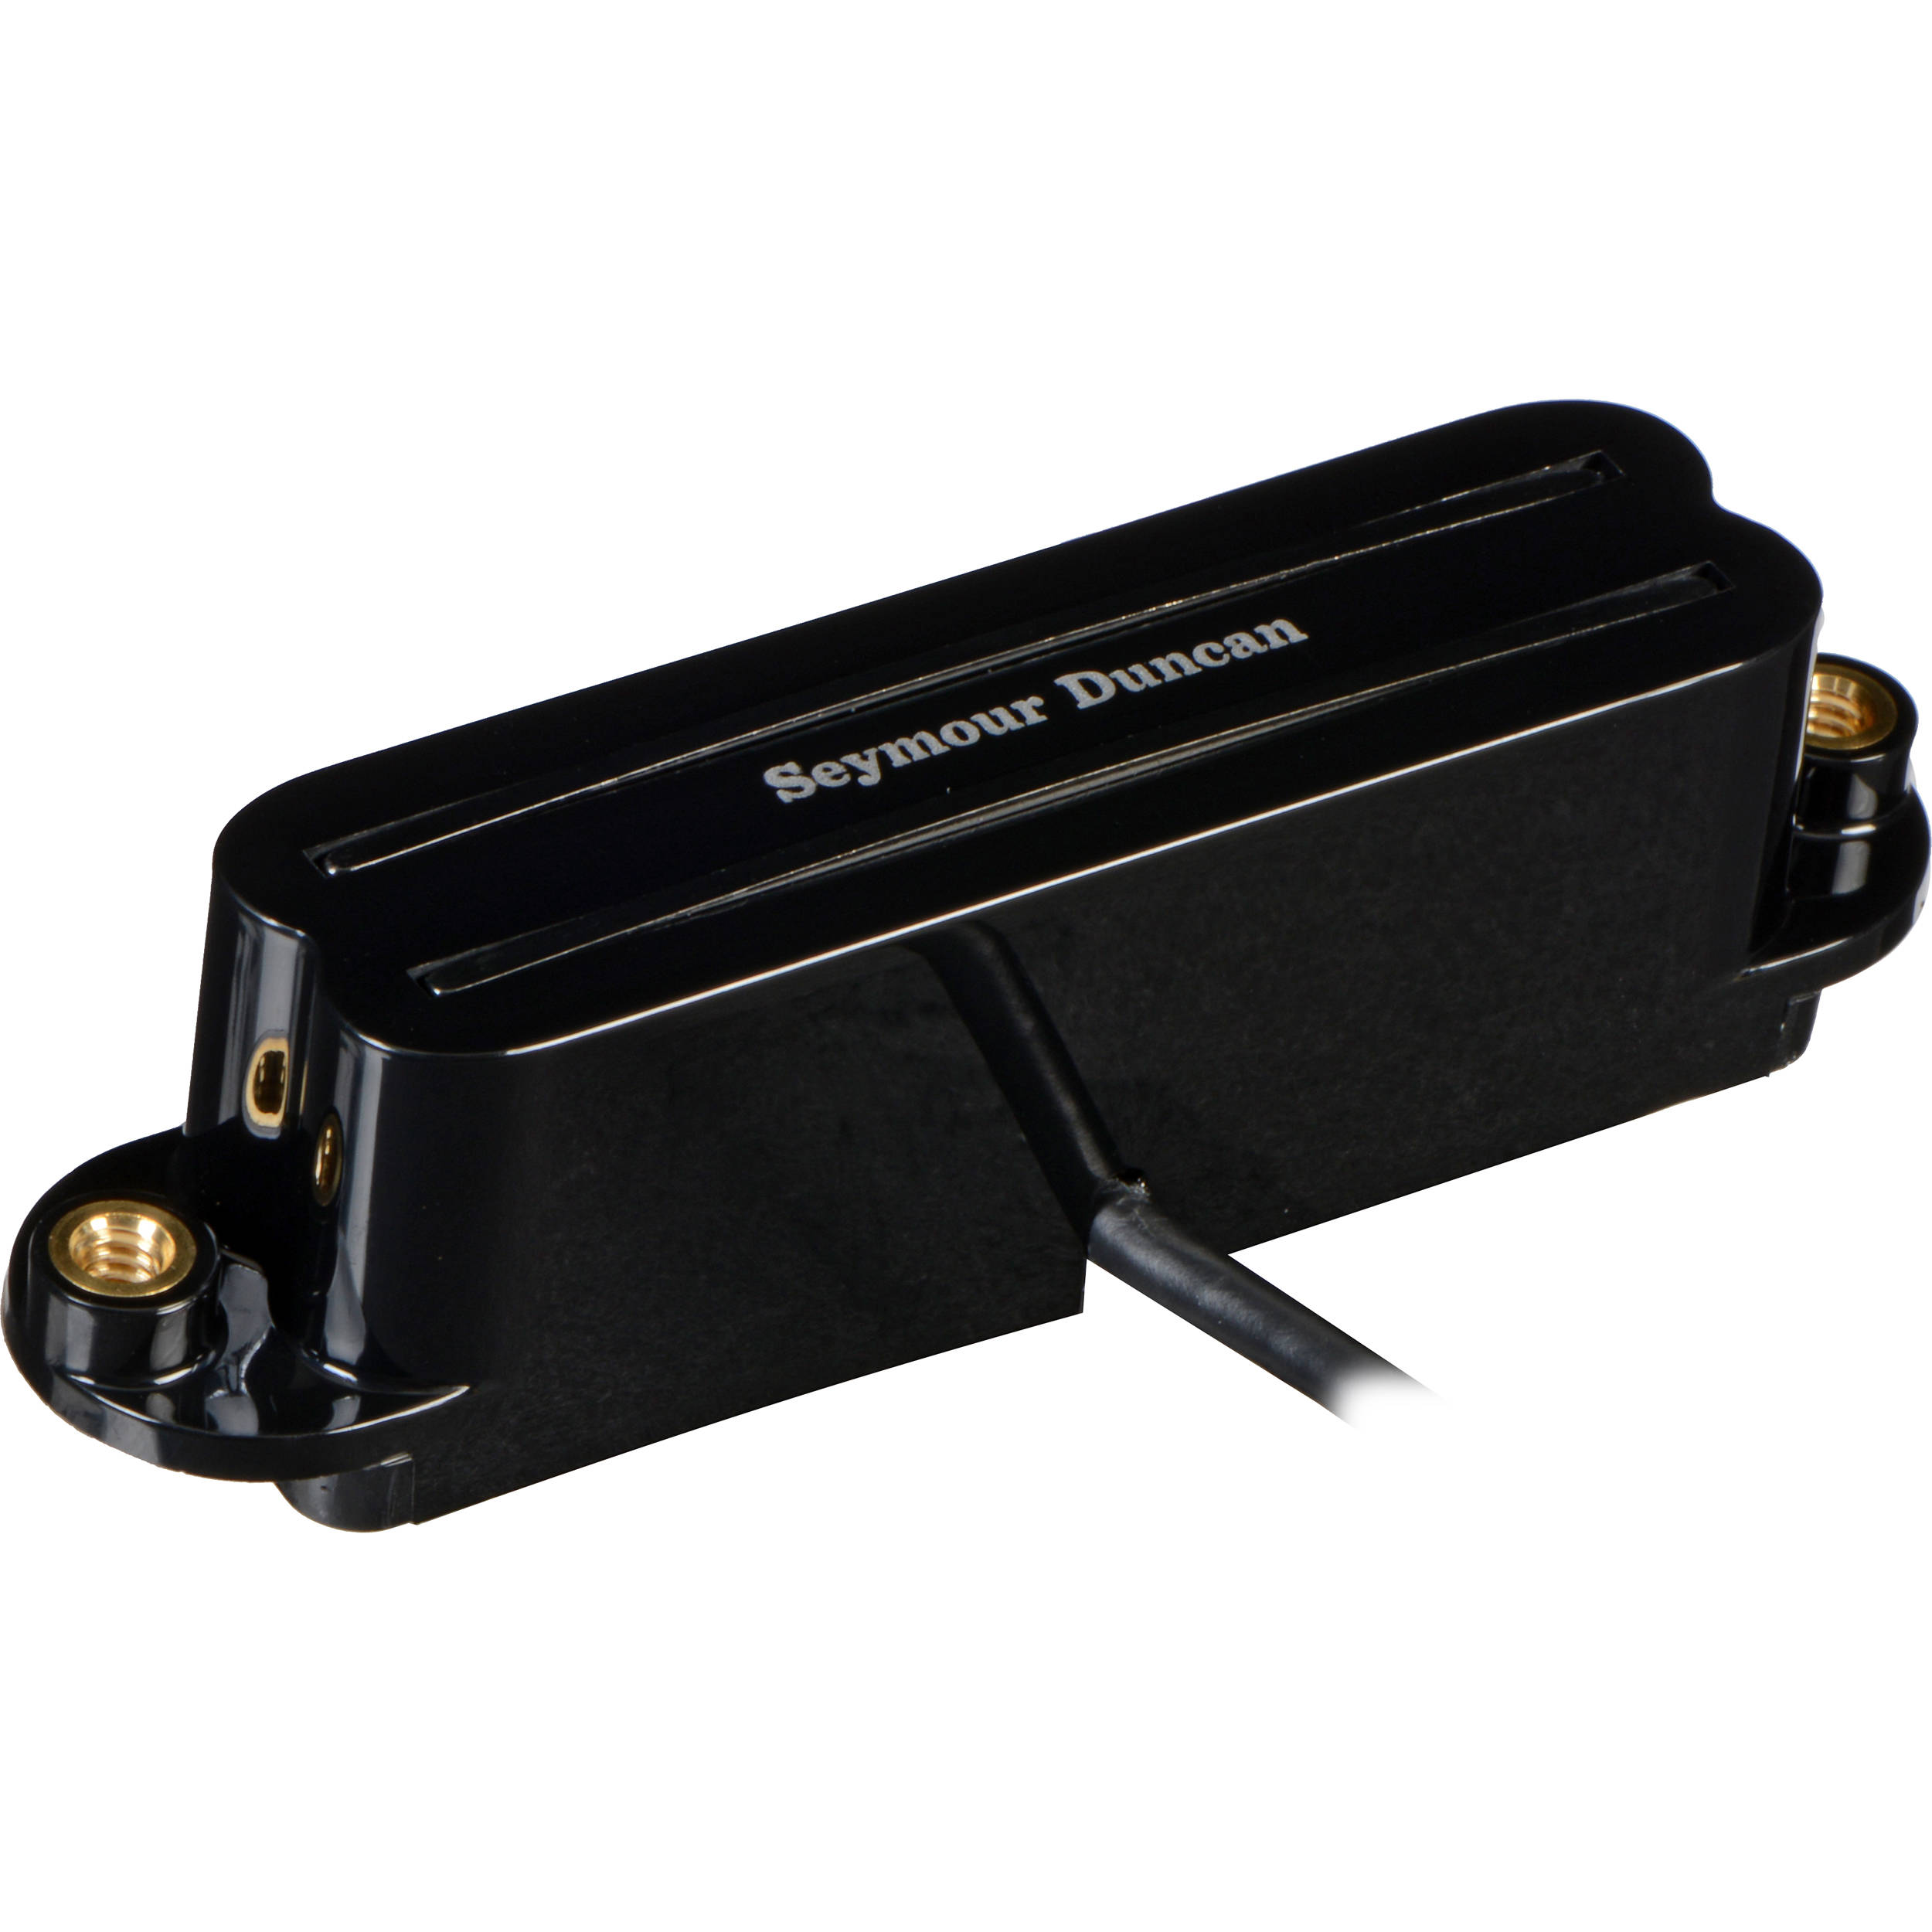 seymour duncan shr 1b hot rails strat single coil 11205 02. Black Bedroom Furniture Sets. Home Design Ideas